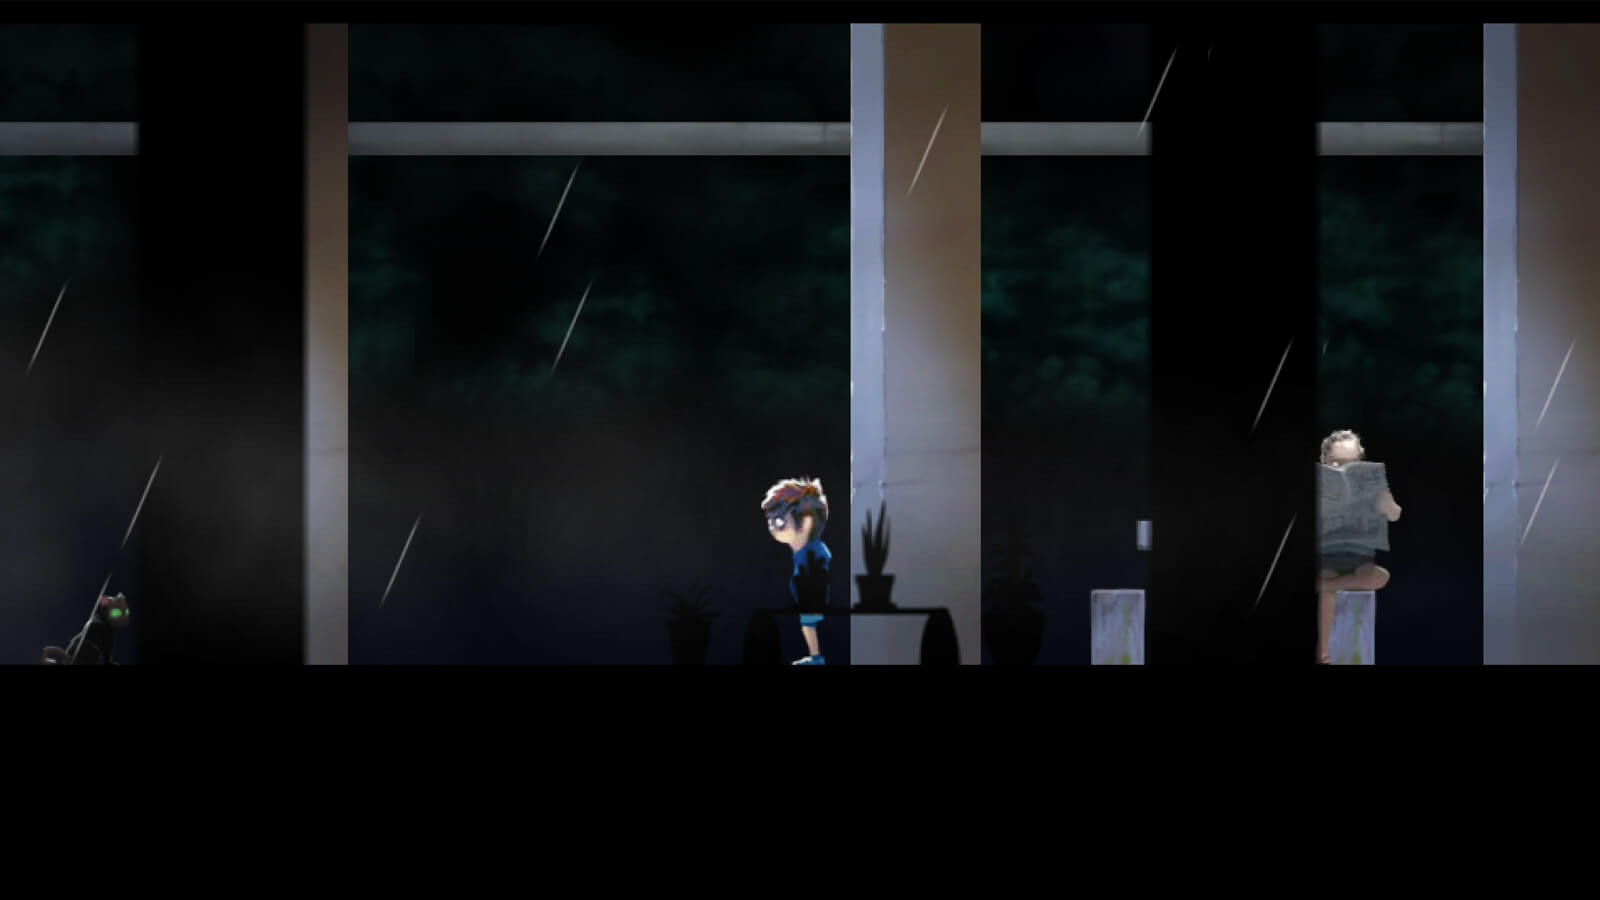 The player's character stands in a darkened room. A black cat and a man reading a newspaper are nearby.